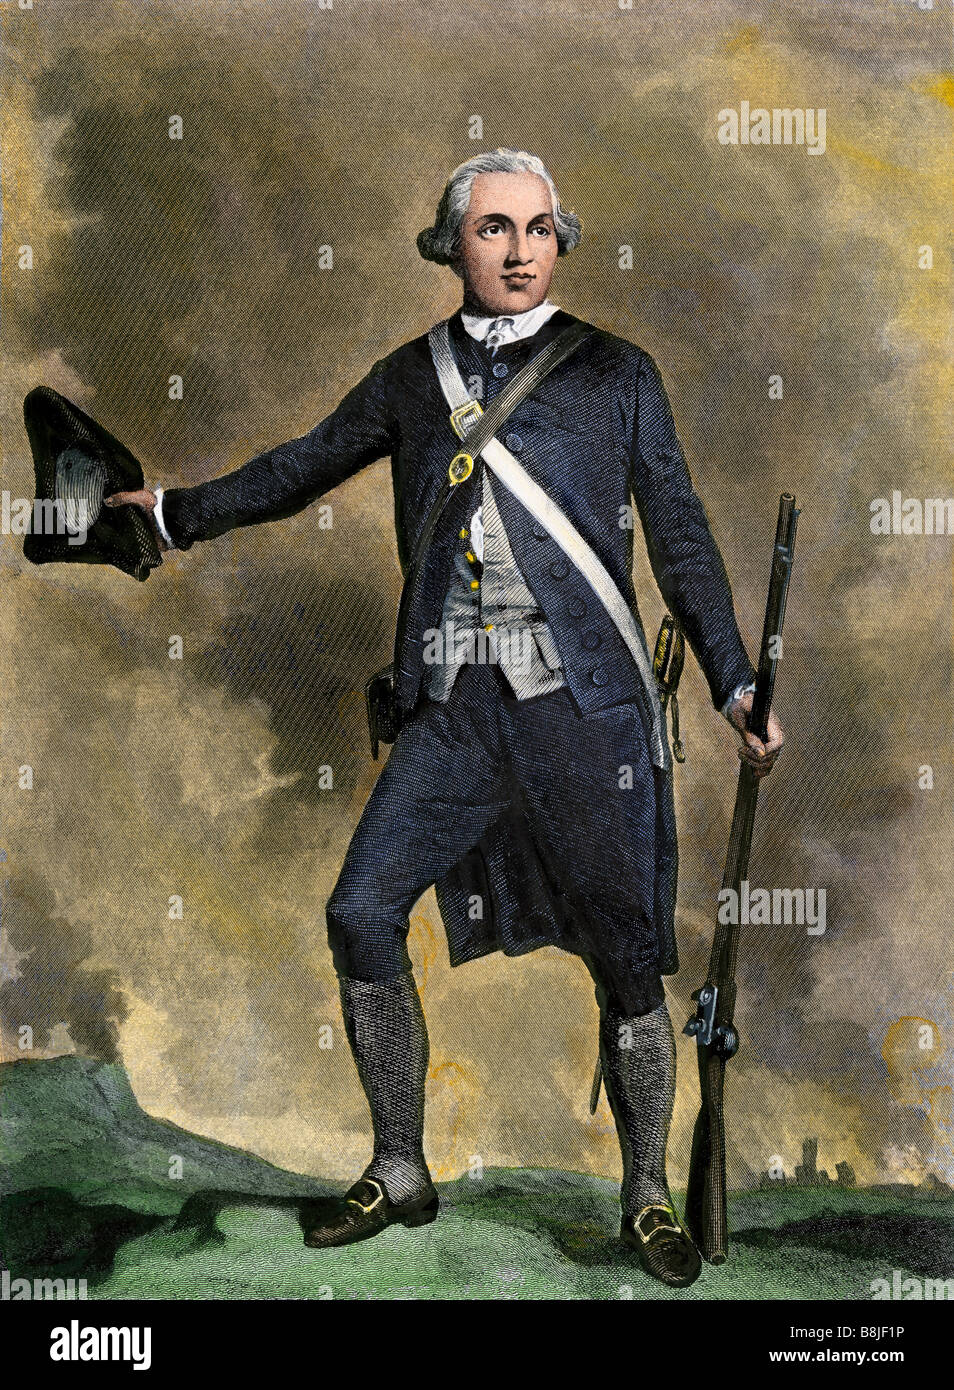 Joseph Warren American patriot leader at the Battle of Bunker Hill. Hand-colored steel engraving - Stock Image